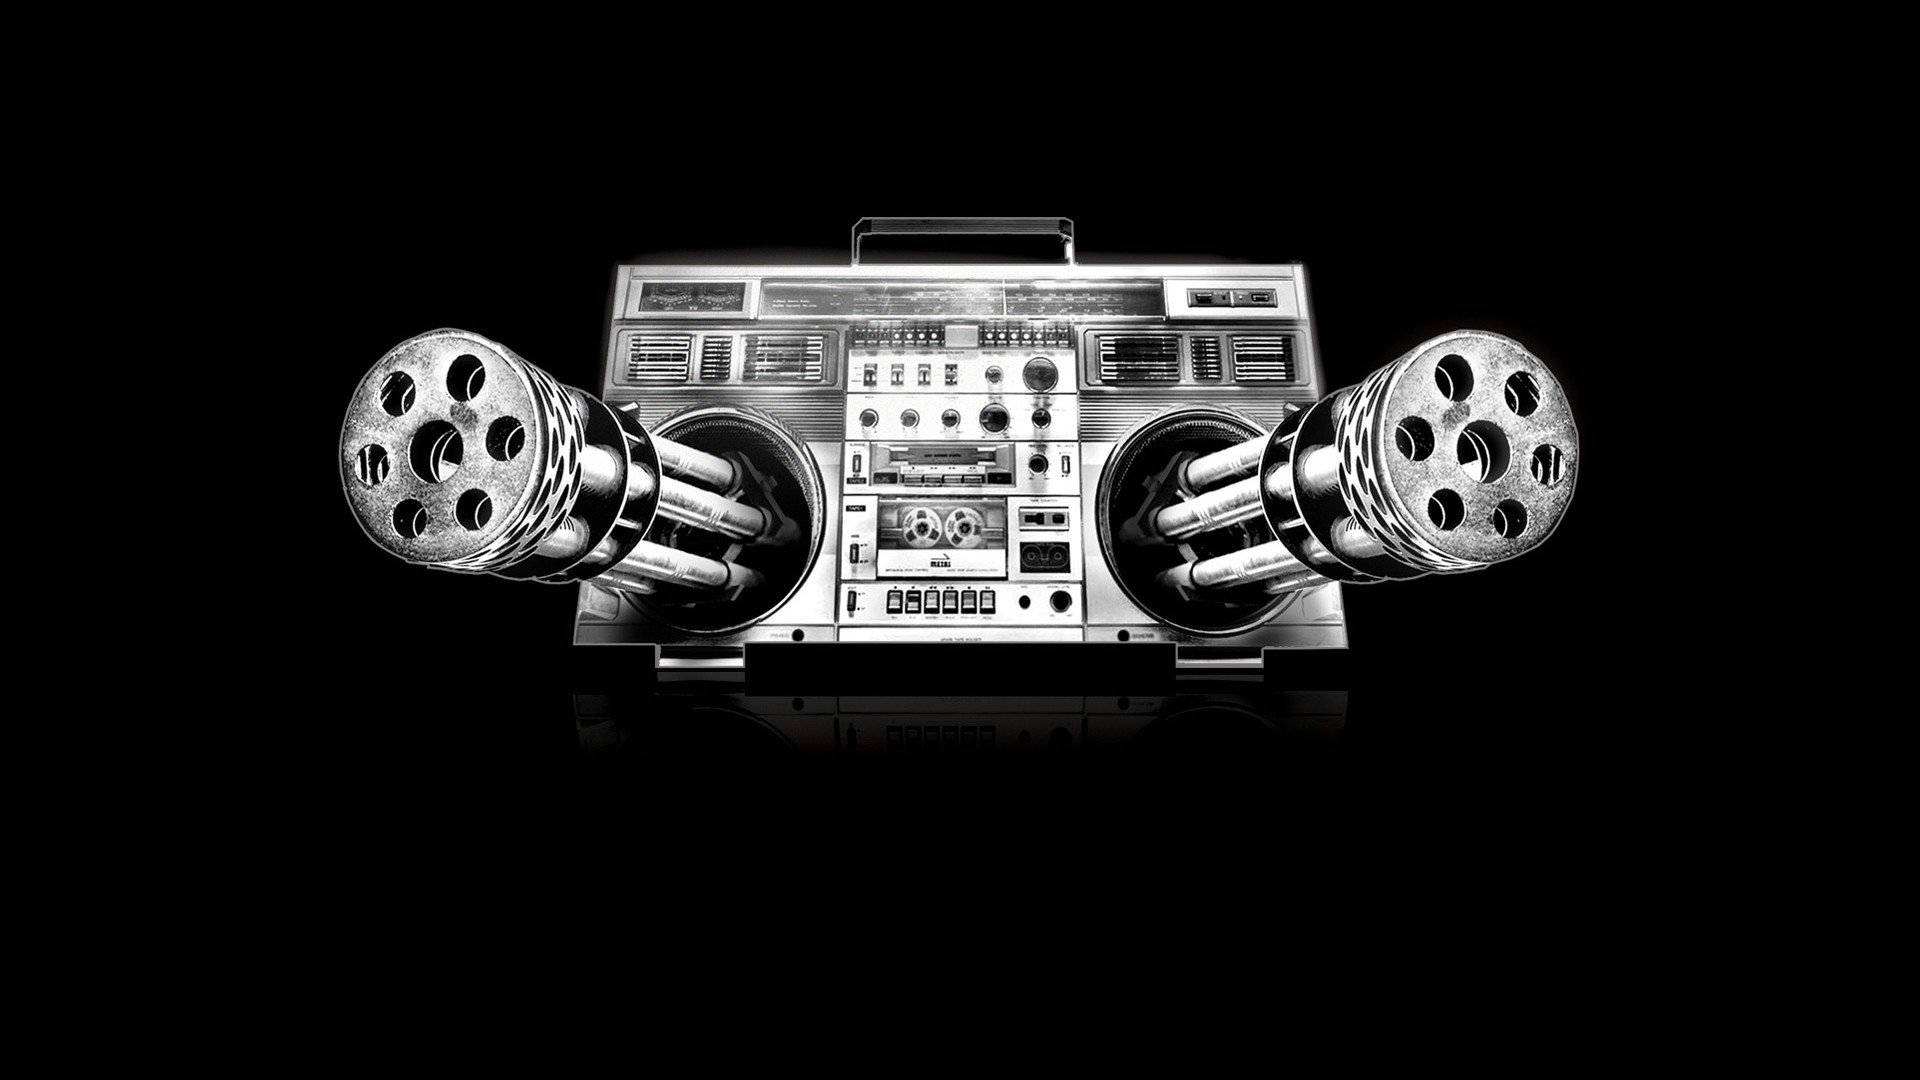 boombox wallpaper 70 images